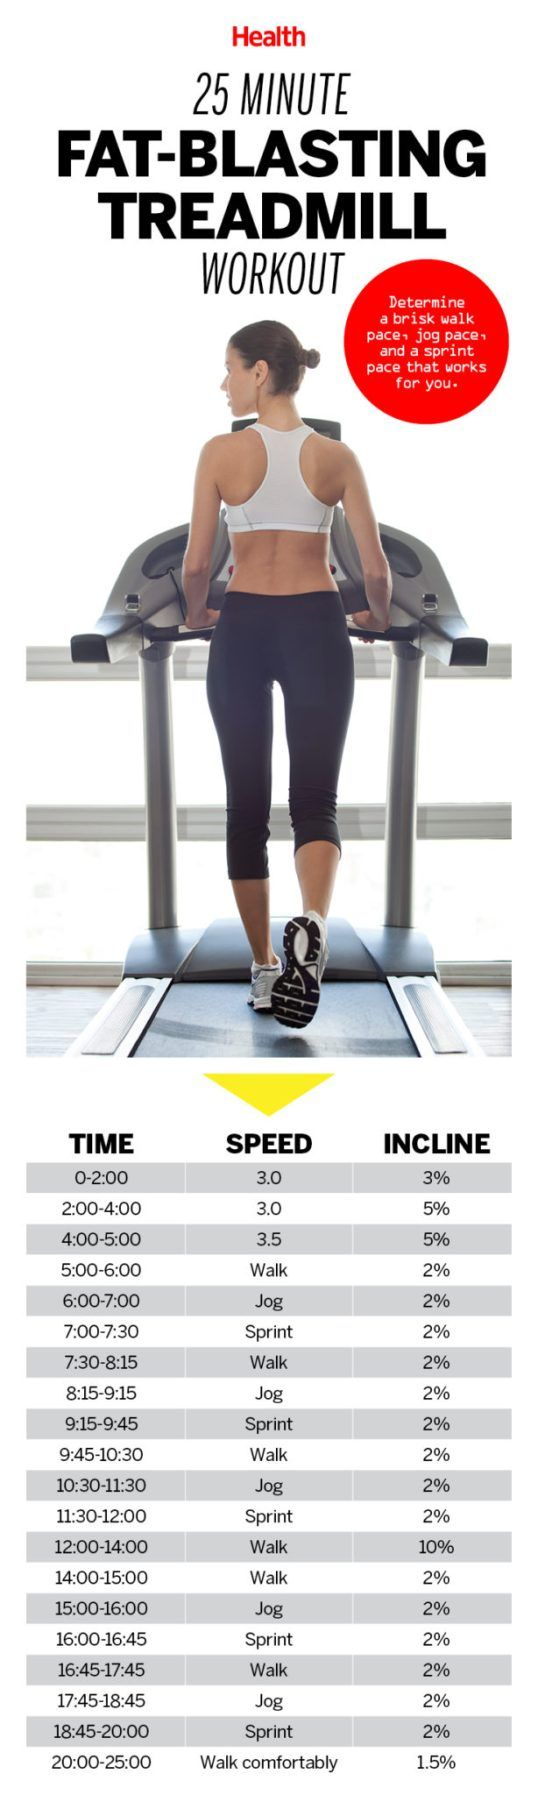 7 Treadmill Workouts for Weight Loss